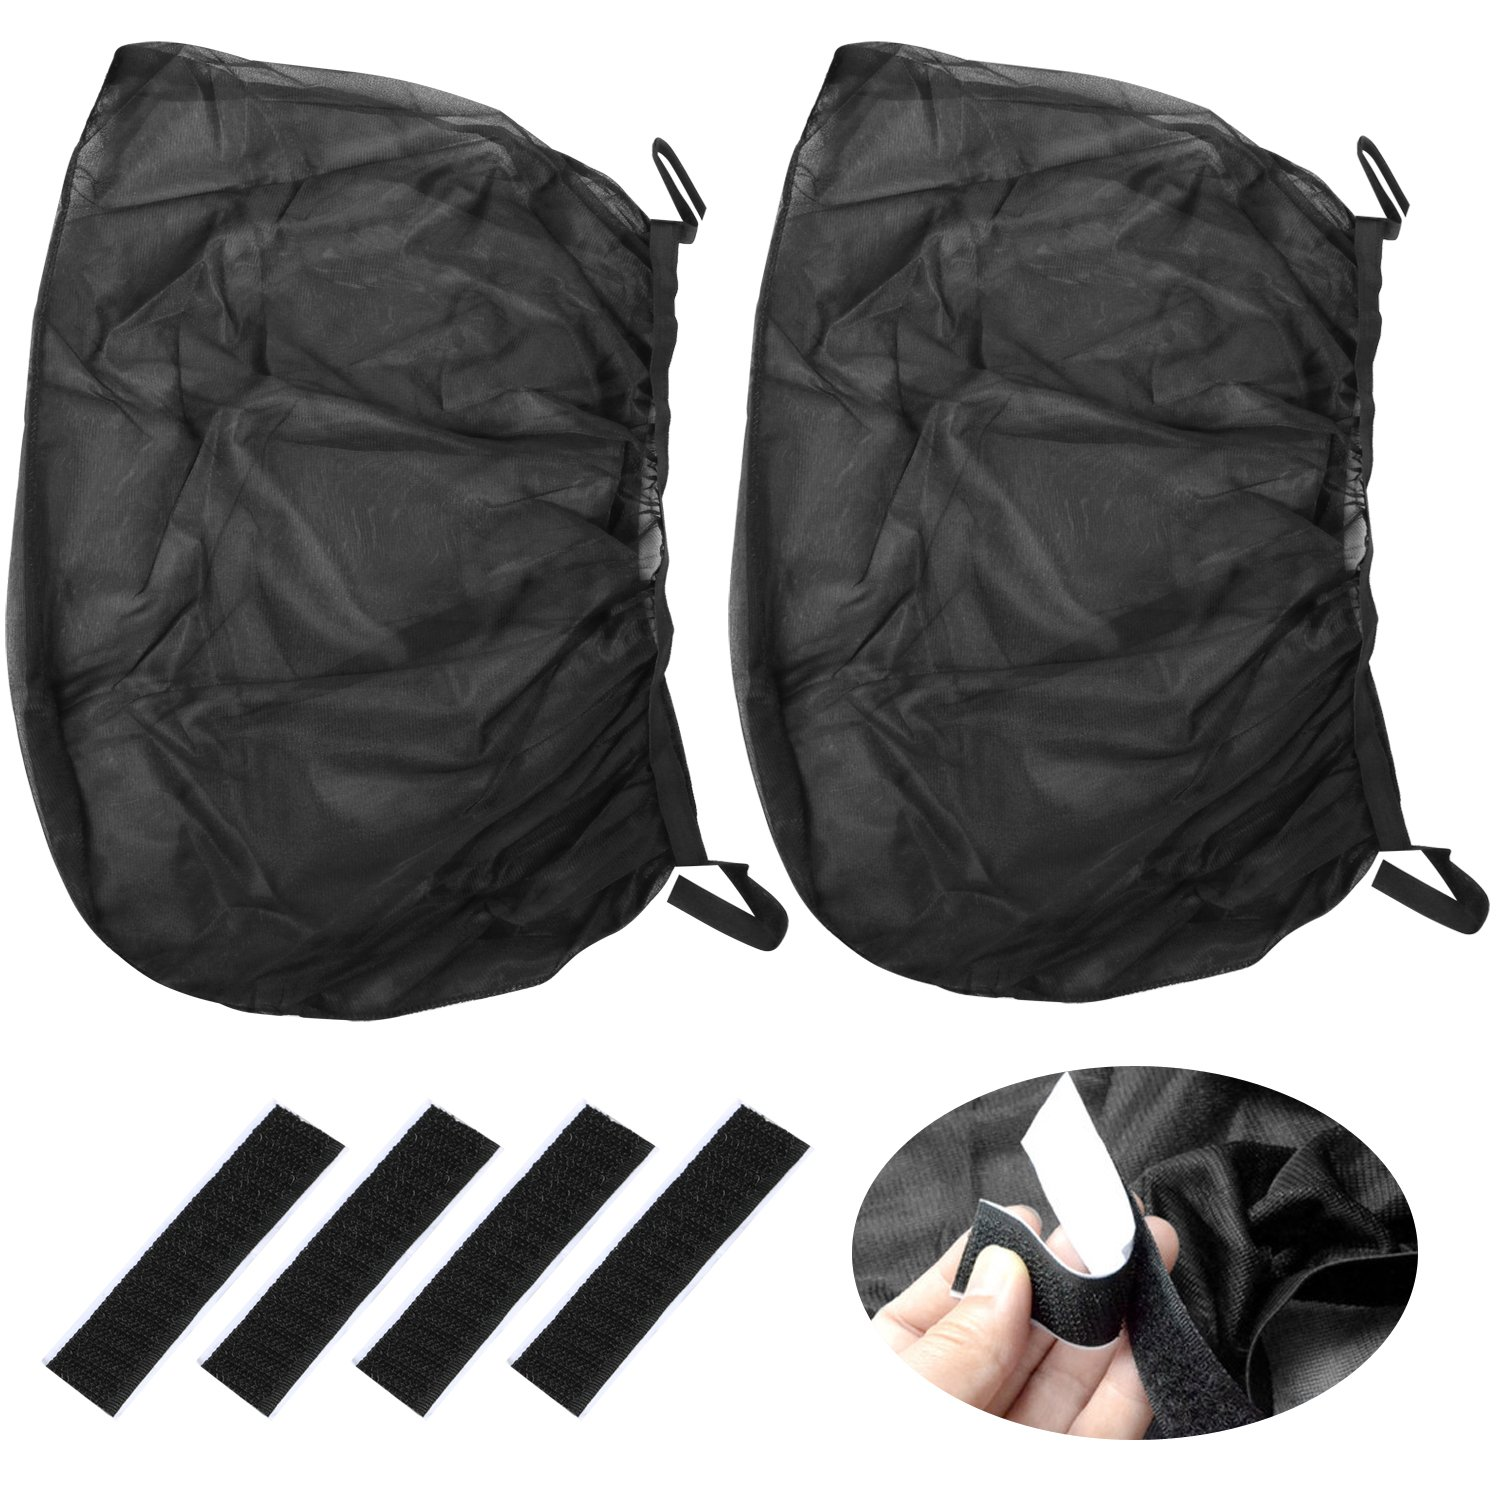 TRIXES 2PC Black Nylon Mesh Exterior Car Window Covers for Sun Shade Filter and Insect Netting